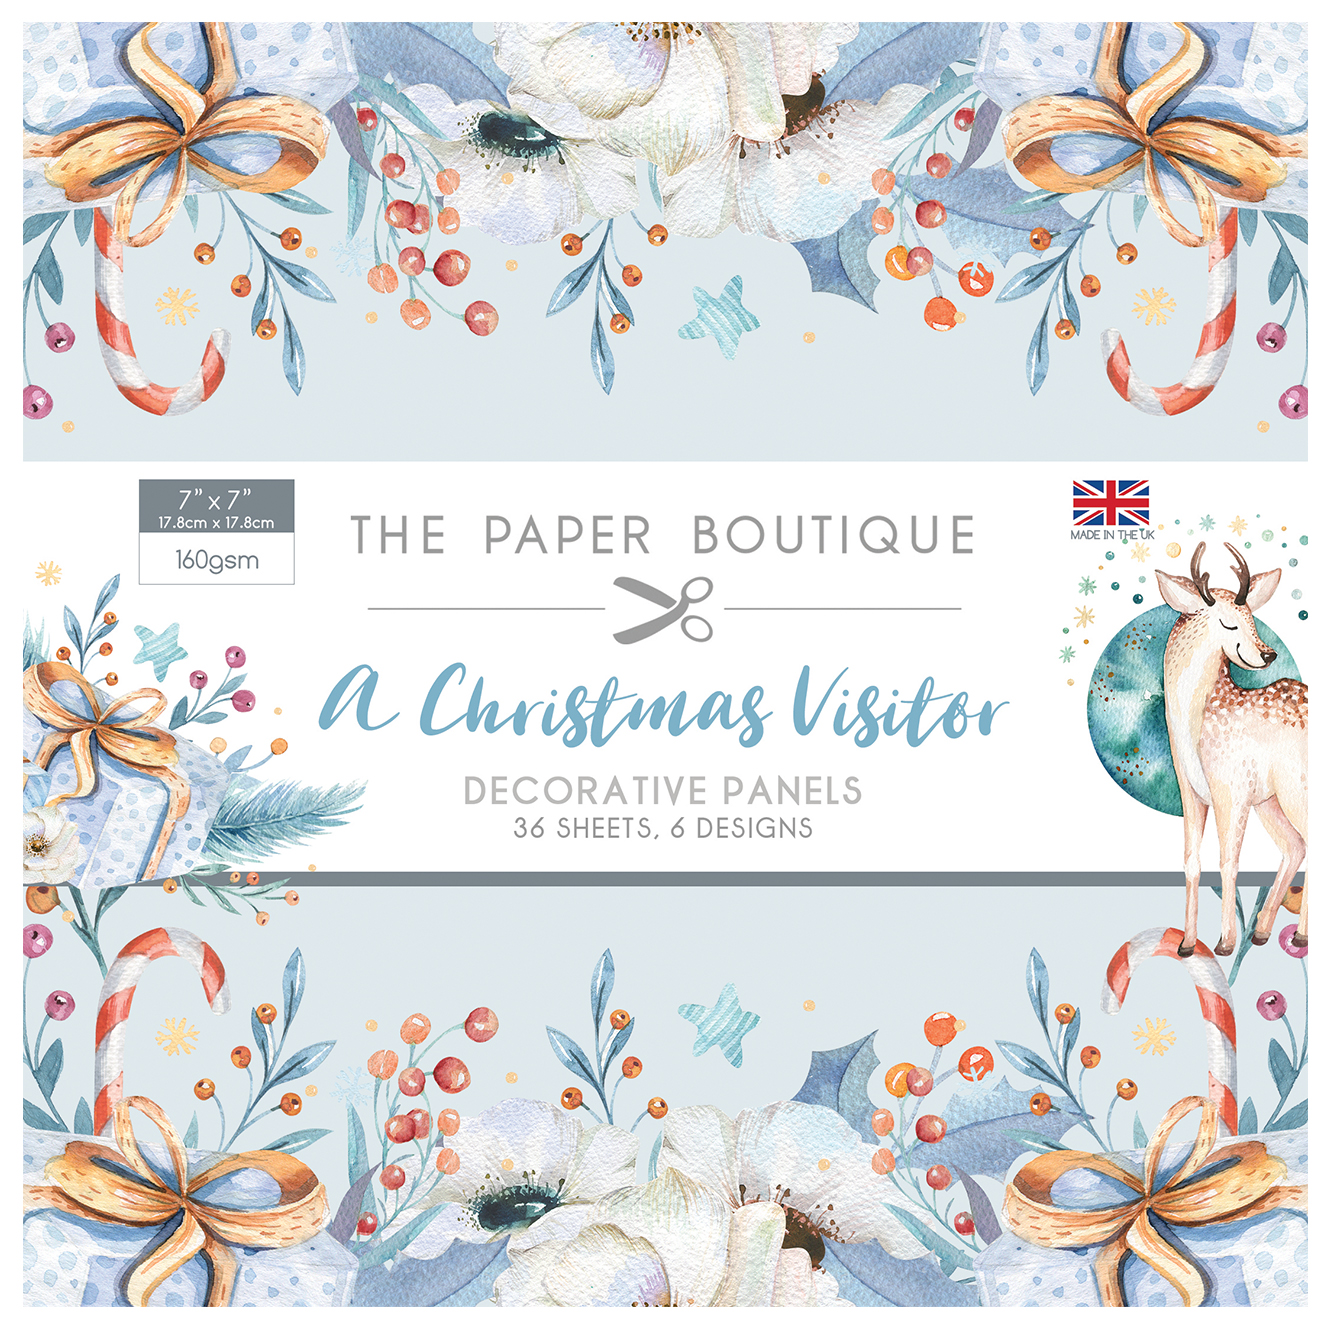 The Paper Boutique A Christmas Visitor 7″ x 7″ Decorative Panel Pad